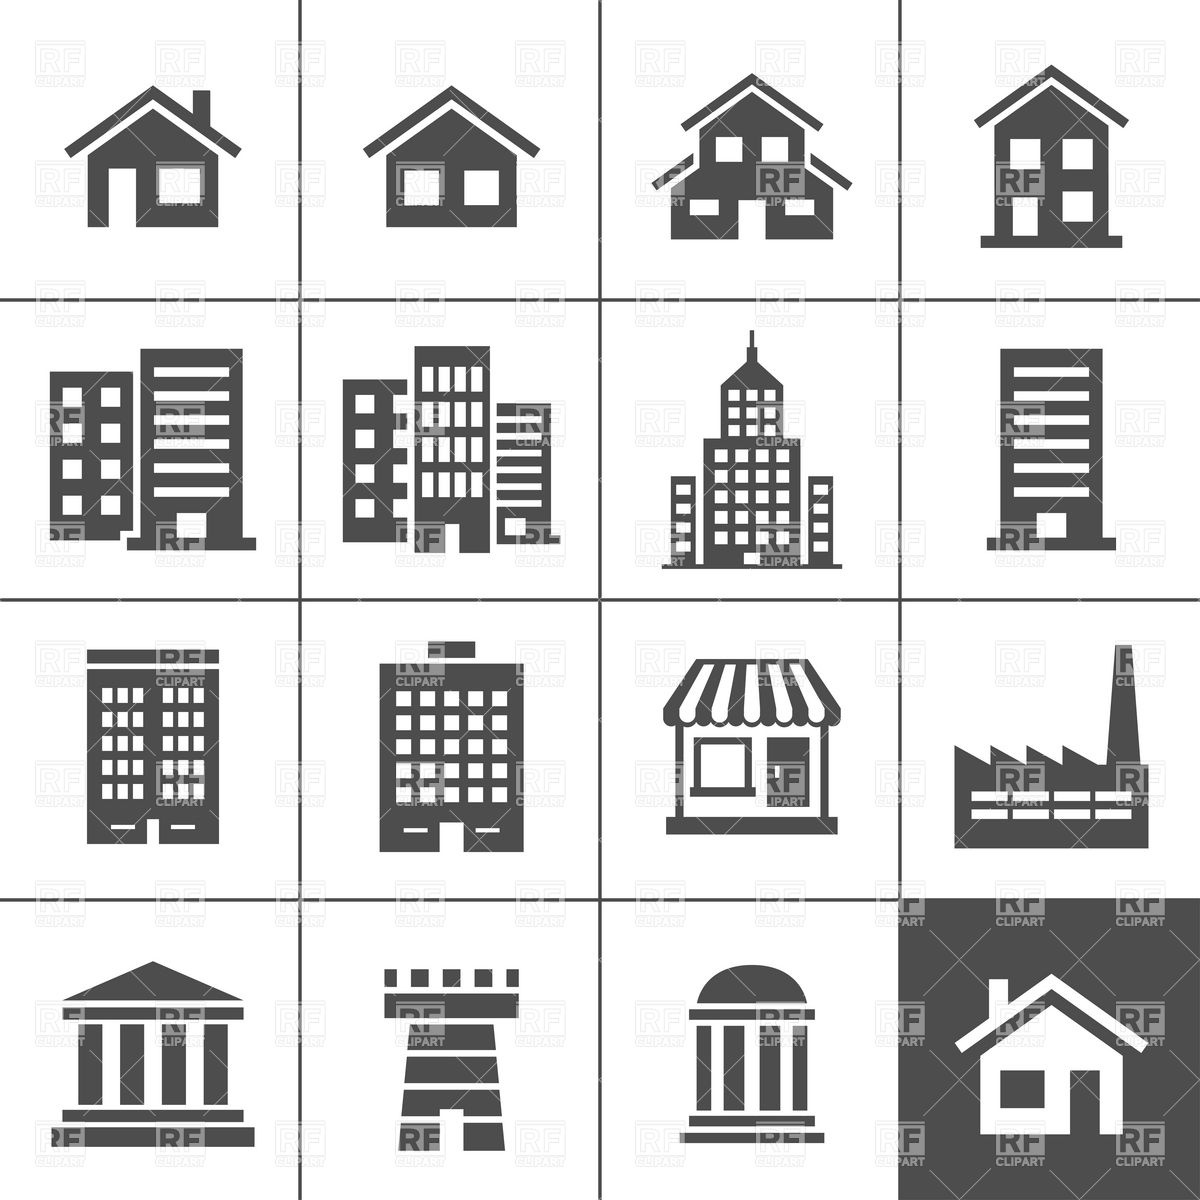 1200x1200 Buildings, Realty And Real Estate Icons Set Vector Image Vector